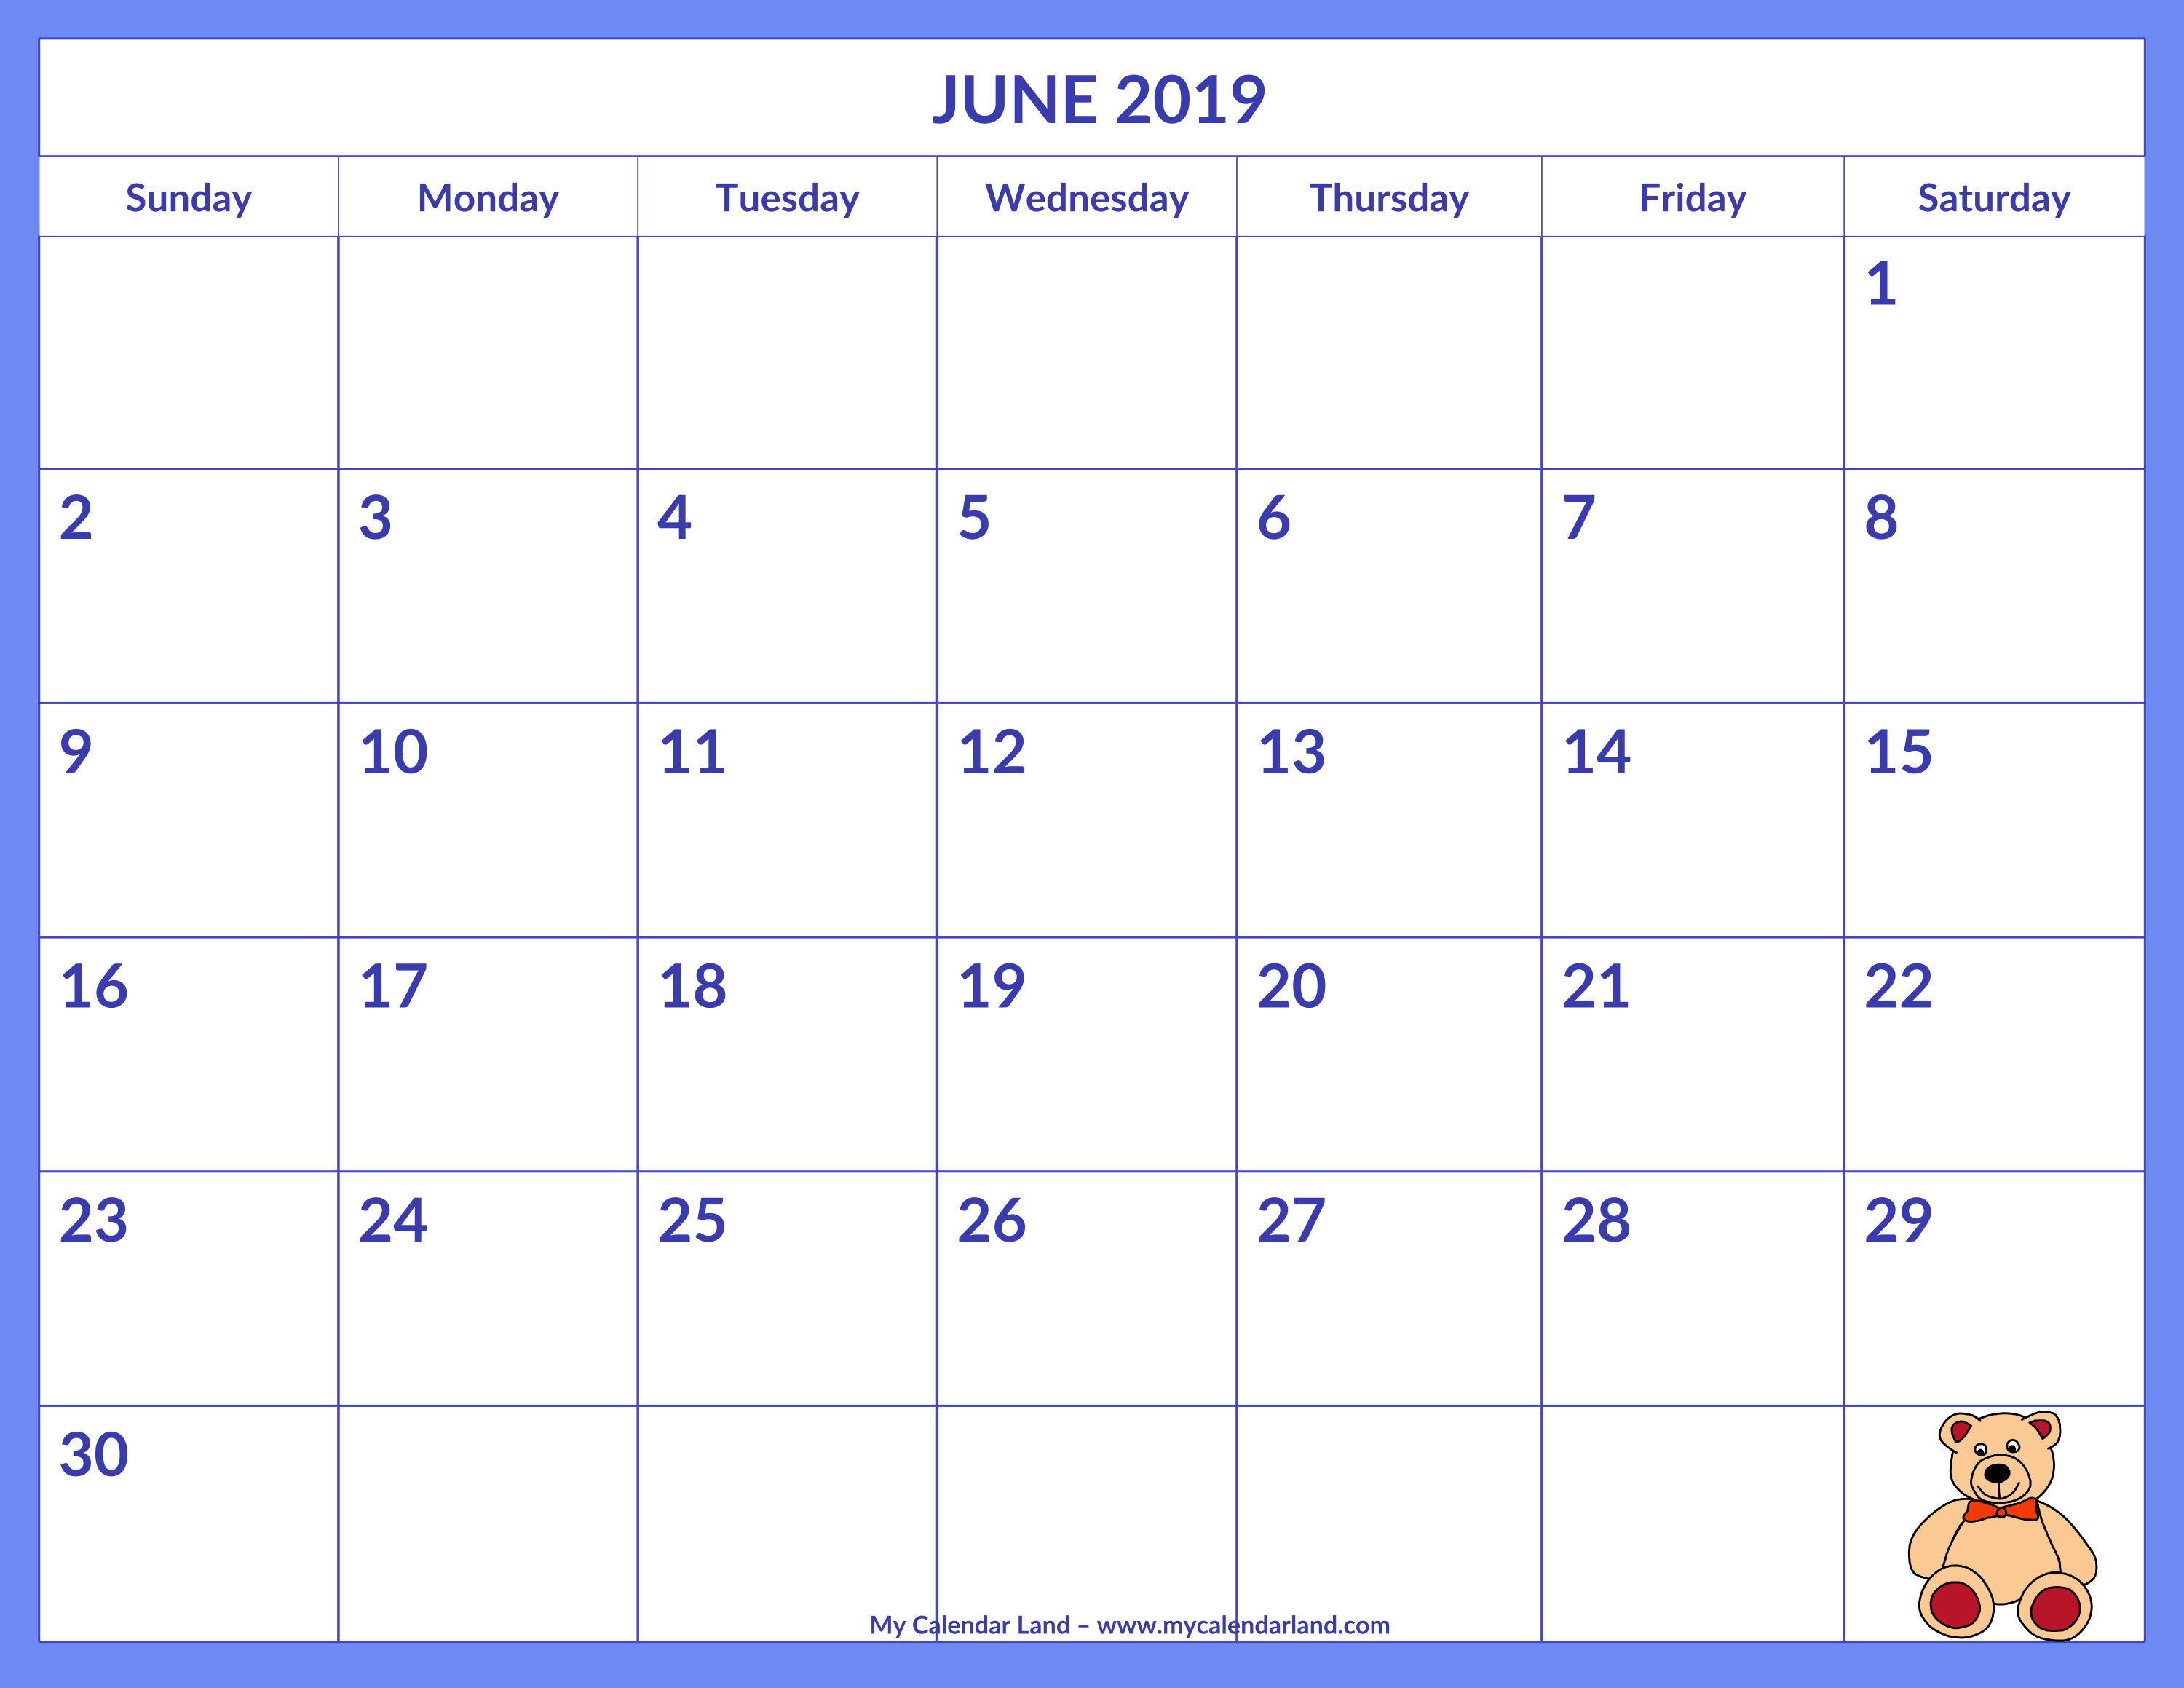 June 2019 Calendar - My Calendar Land Calendar 2019 Themes